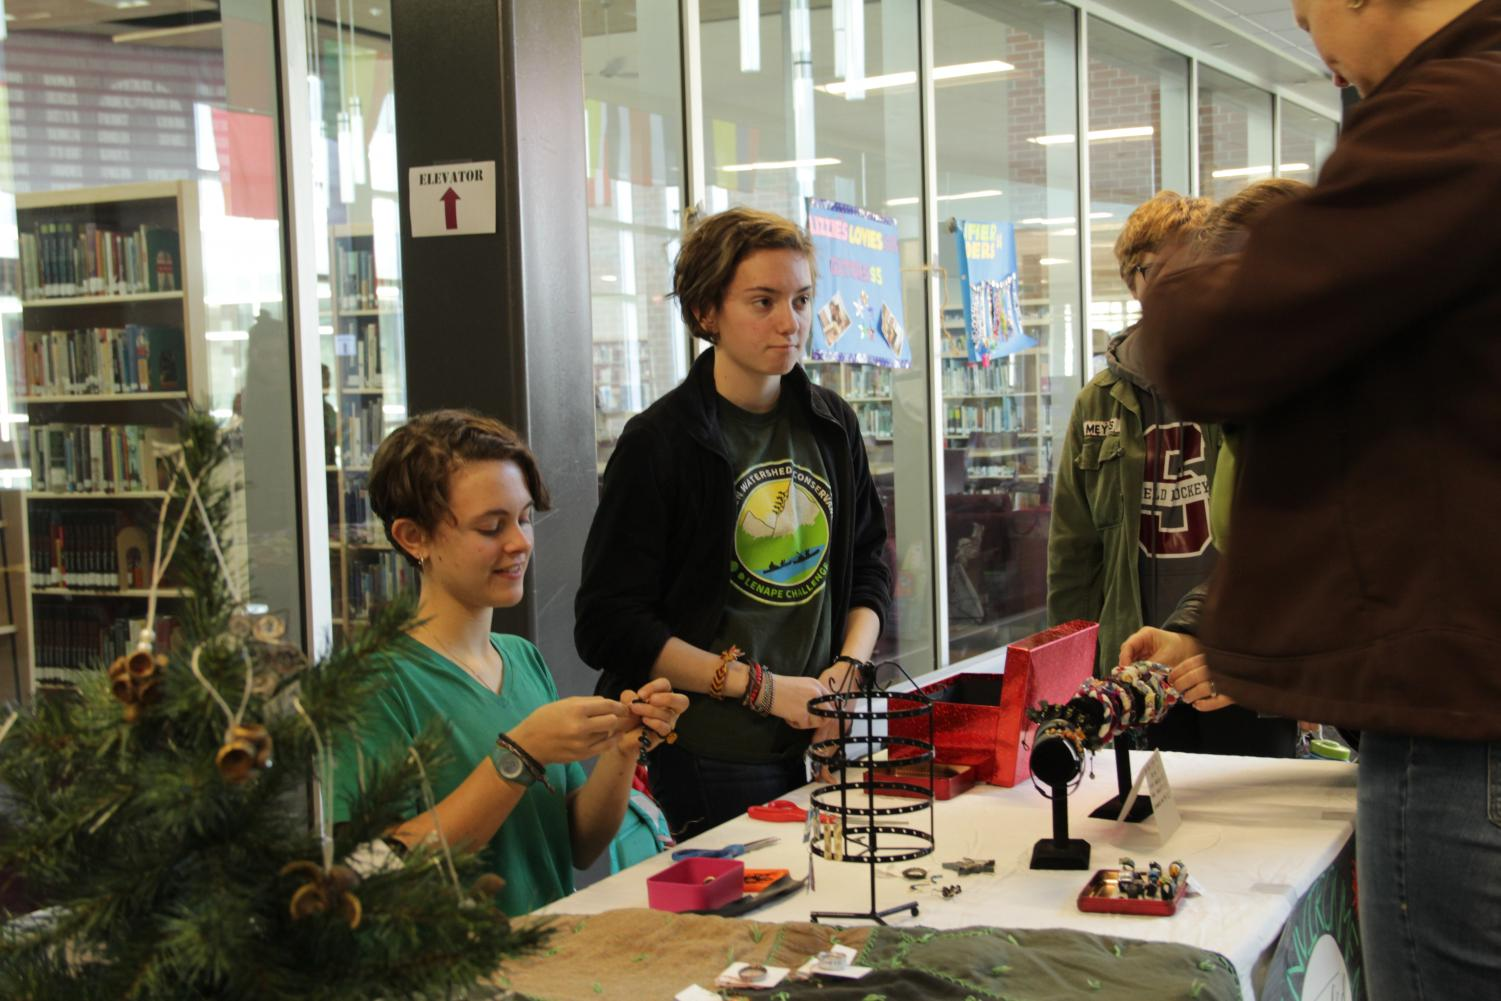 """Sophomores Lucinda Kaye and Caitlin Moser from the Environmental Club participate in the Holiday Bazaar. The Environmental Club sold jewelry and ornaments made out of recycled material at the Holiday Bazaar. """"We were selling things made out of recycled material because there is a lot of waste associated with the holidays and we wanted to reduce that waste as well as show people that you can make nice gifts out of things that are usually considered trash,"""" Kaye said."""